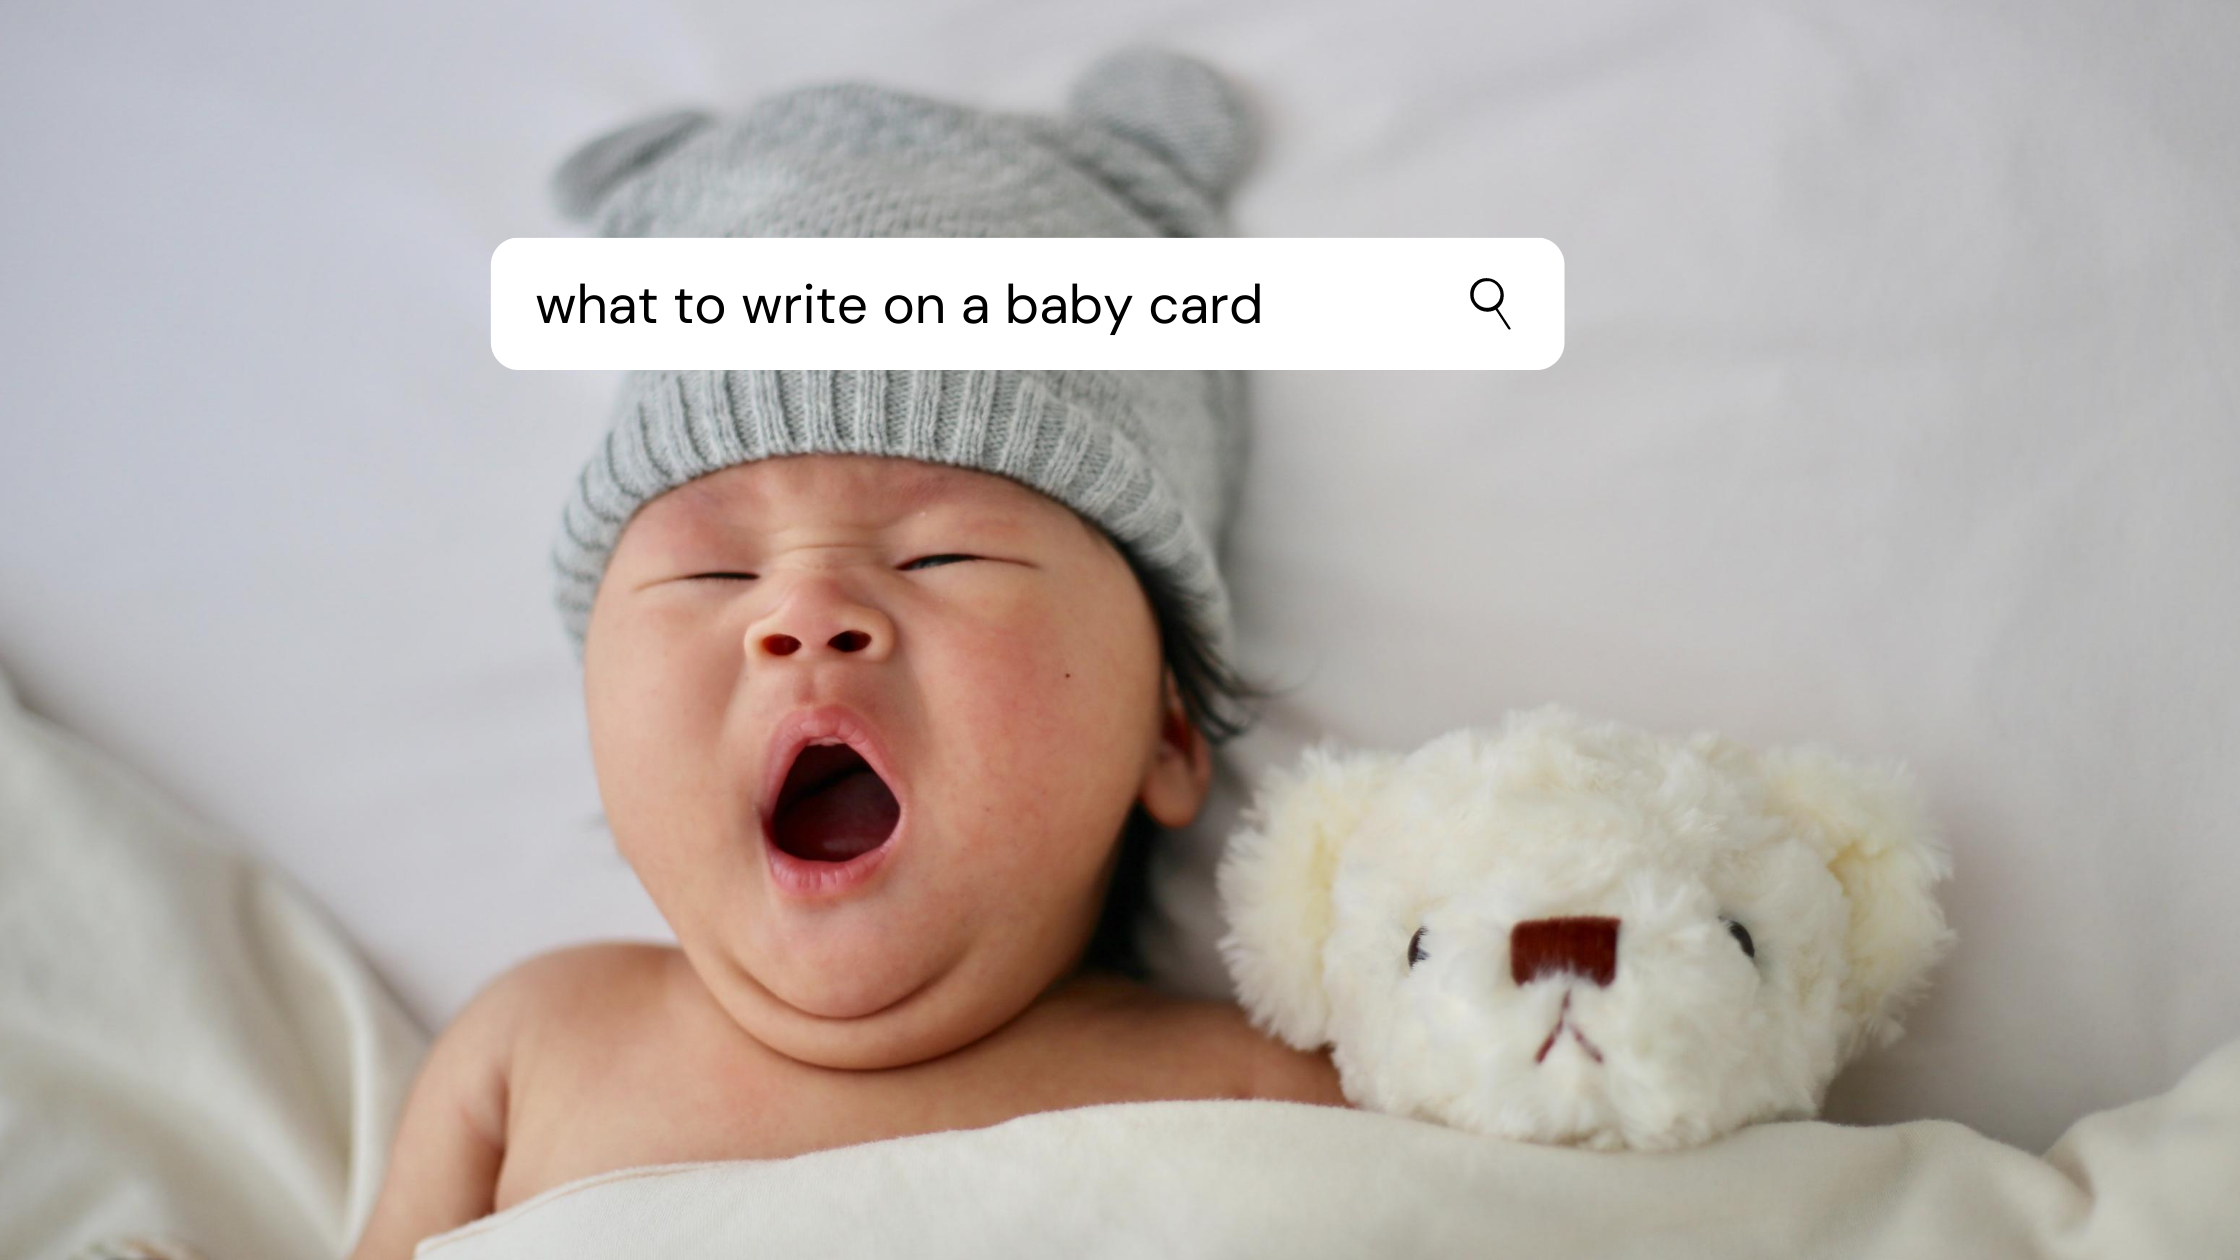 What to write on a baby gift